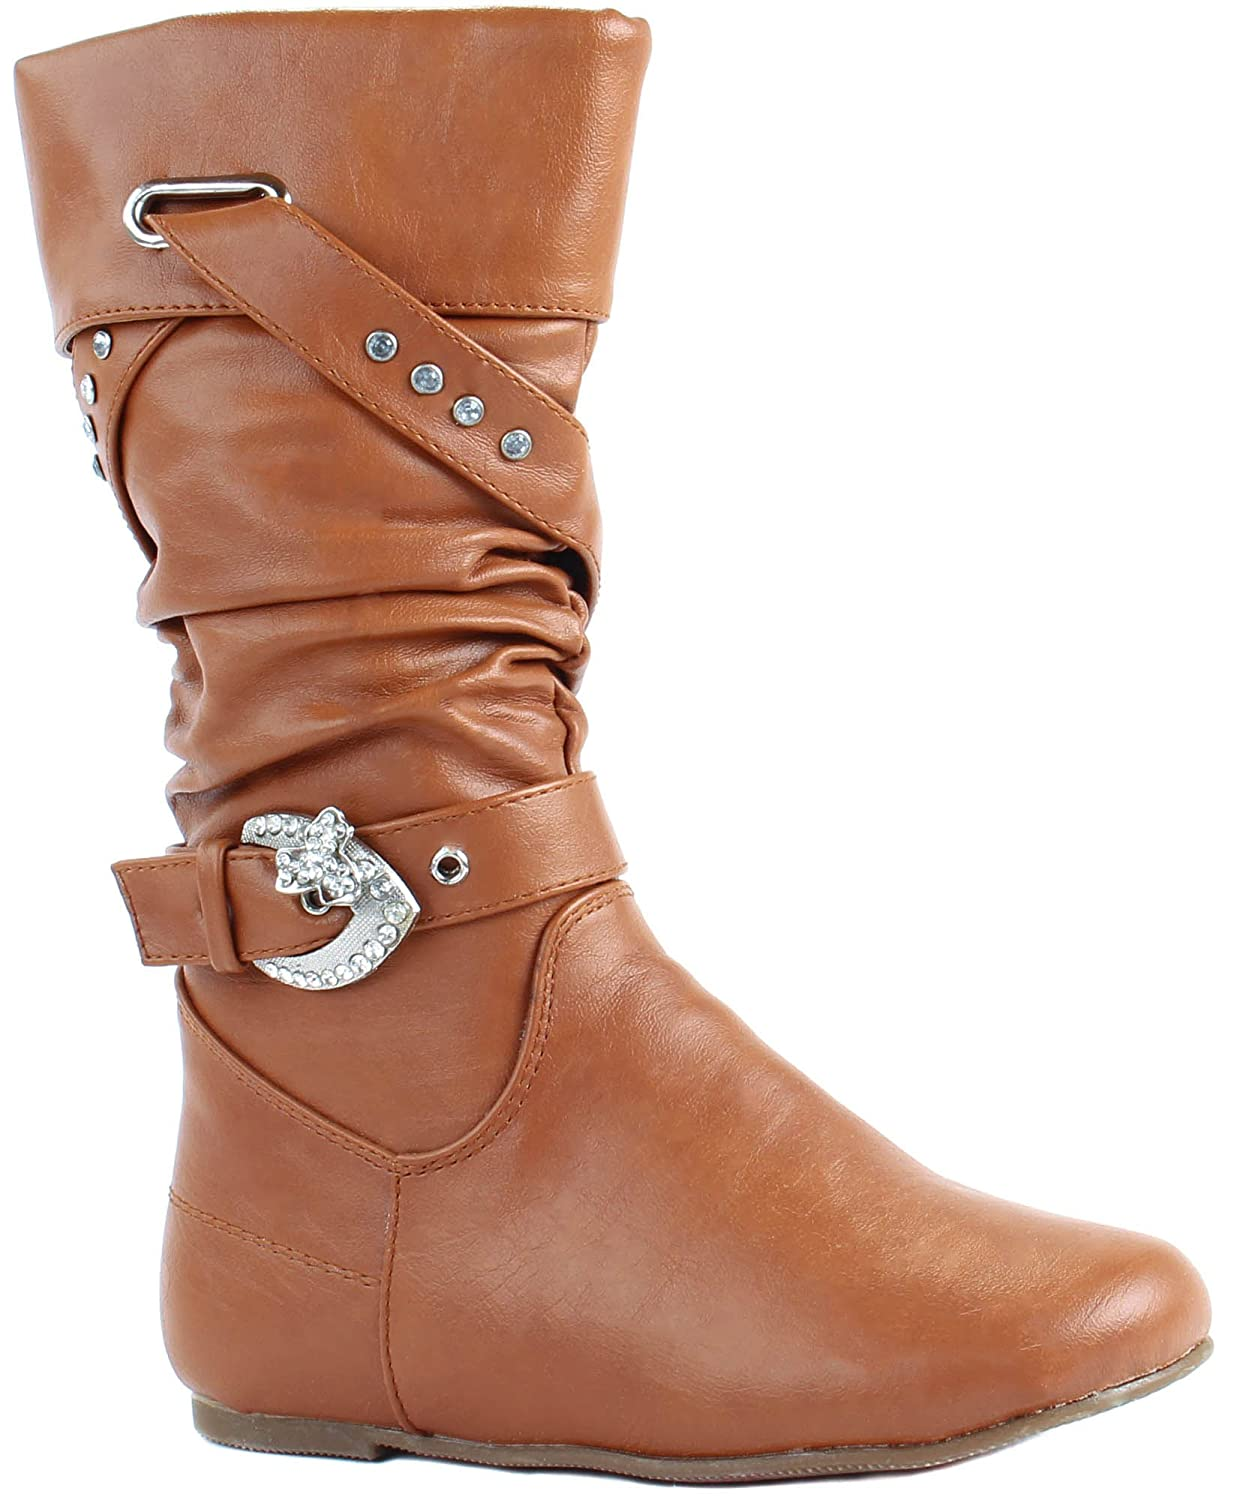 Lucky Top Little Girls Data-62K Faux Leather Flat Boots with Decorative Crossed Straps with Rhinestones